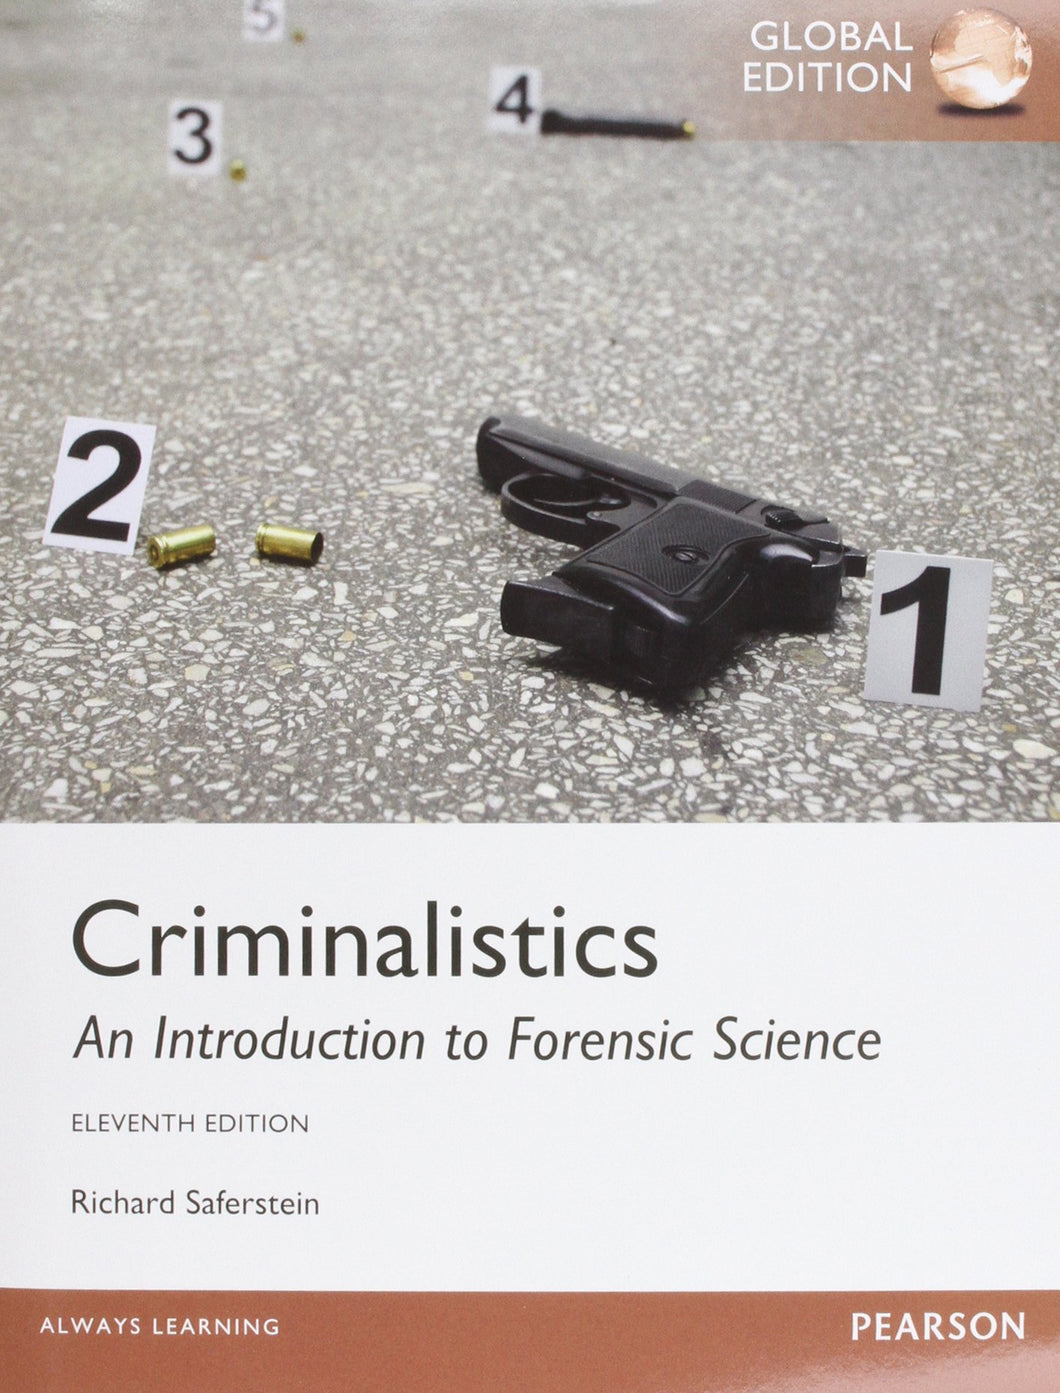 Criminalistics: An Introduction to Forensic Science [Paperback] 11e by Richard Saferstein